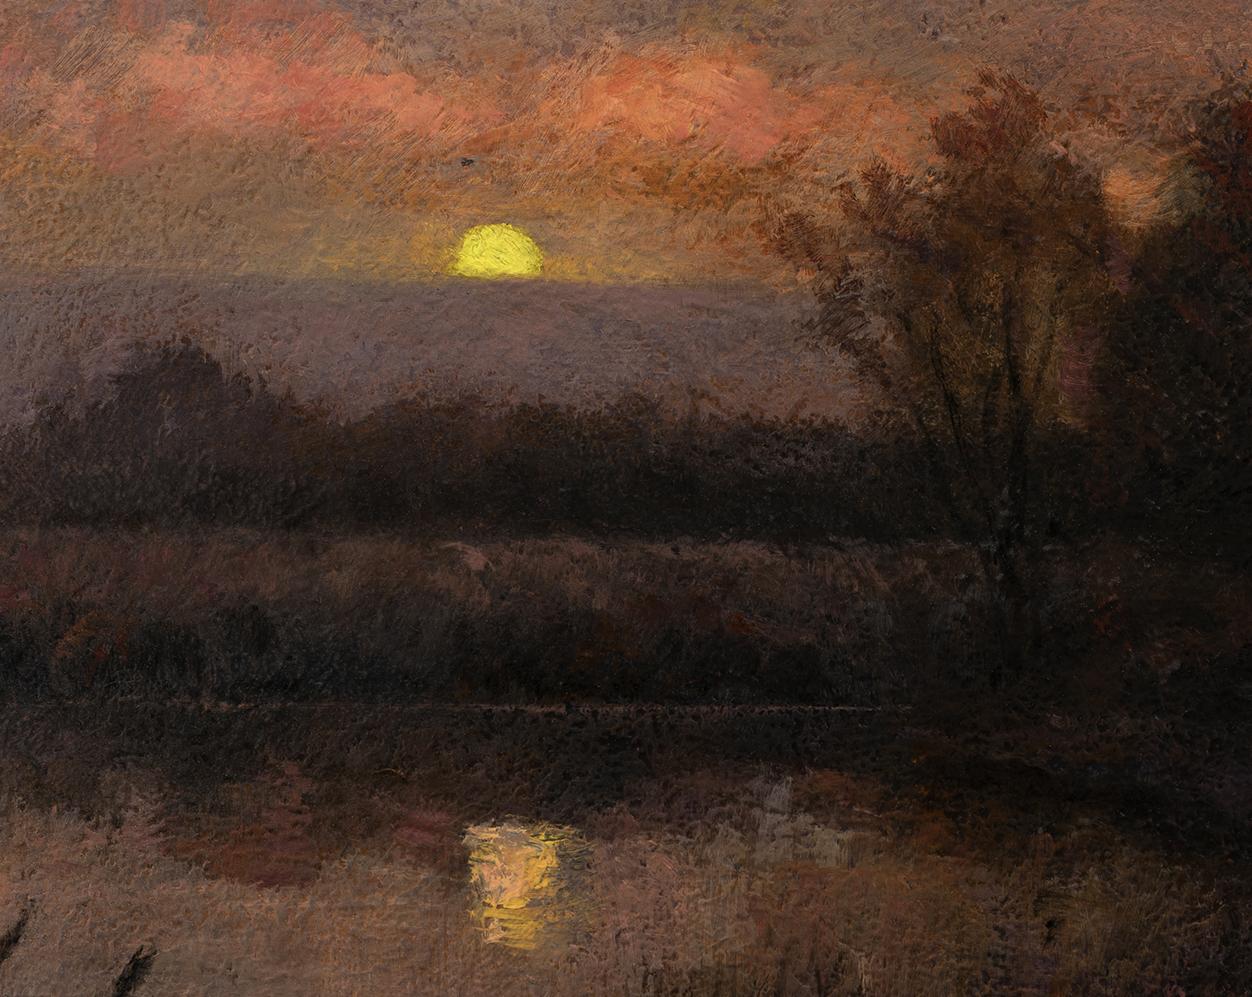 Study after: Edward Wilkins Waite An Autumn Moonrise by M Francis McCarthy - 8x10 (Detail)